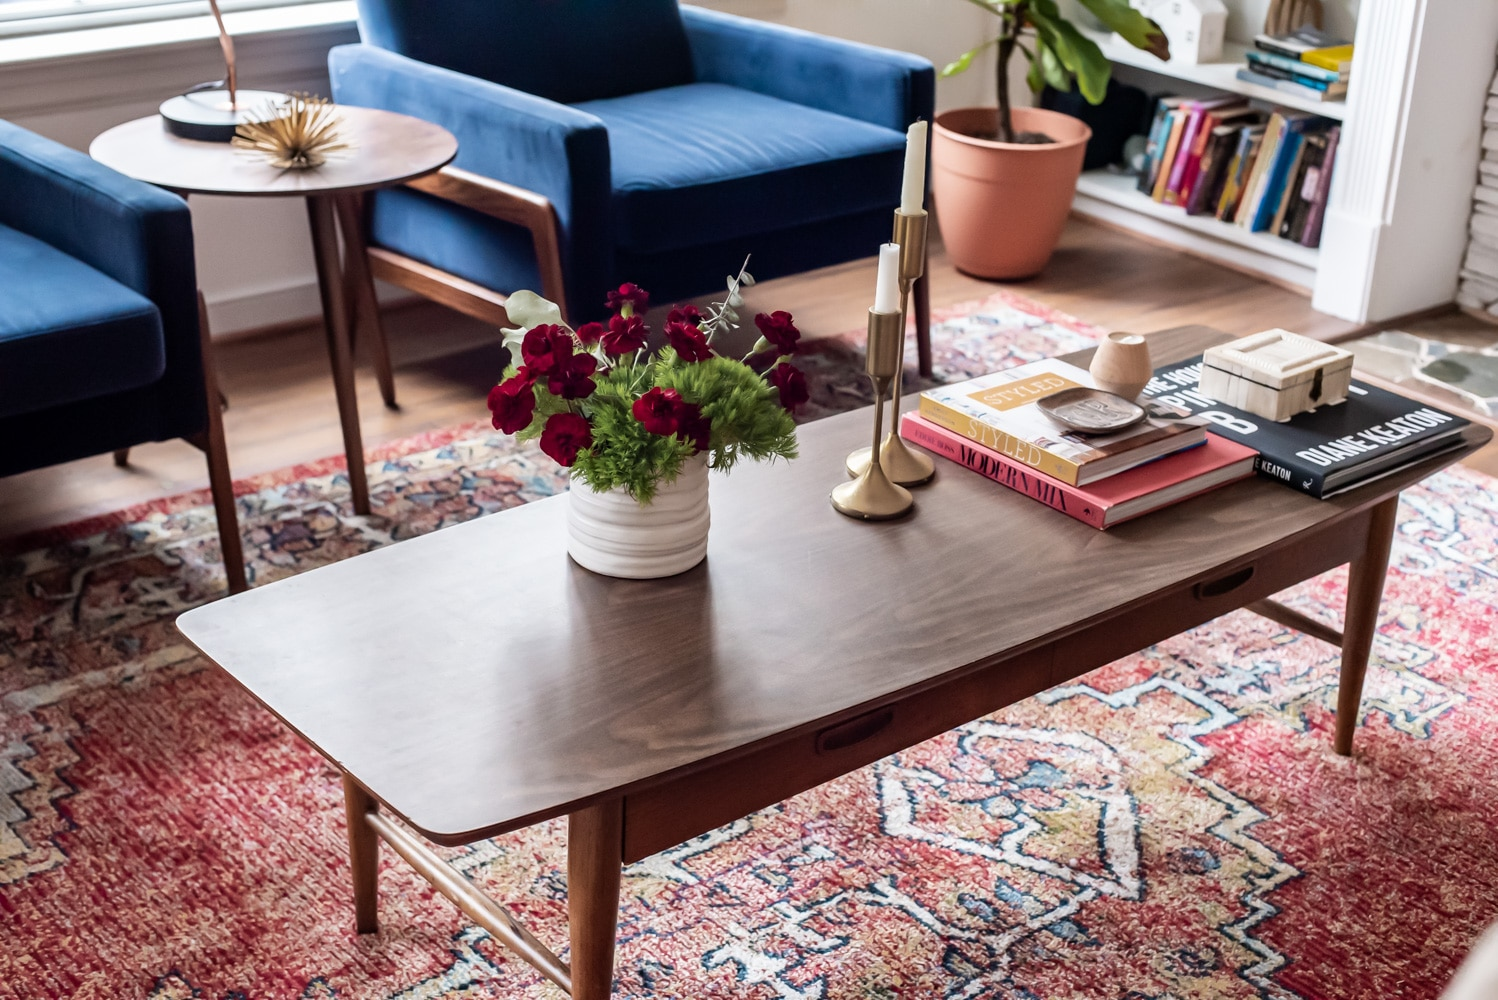 florals displayed on top of coffee table